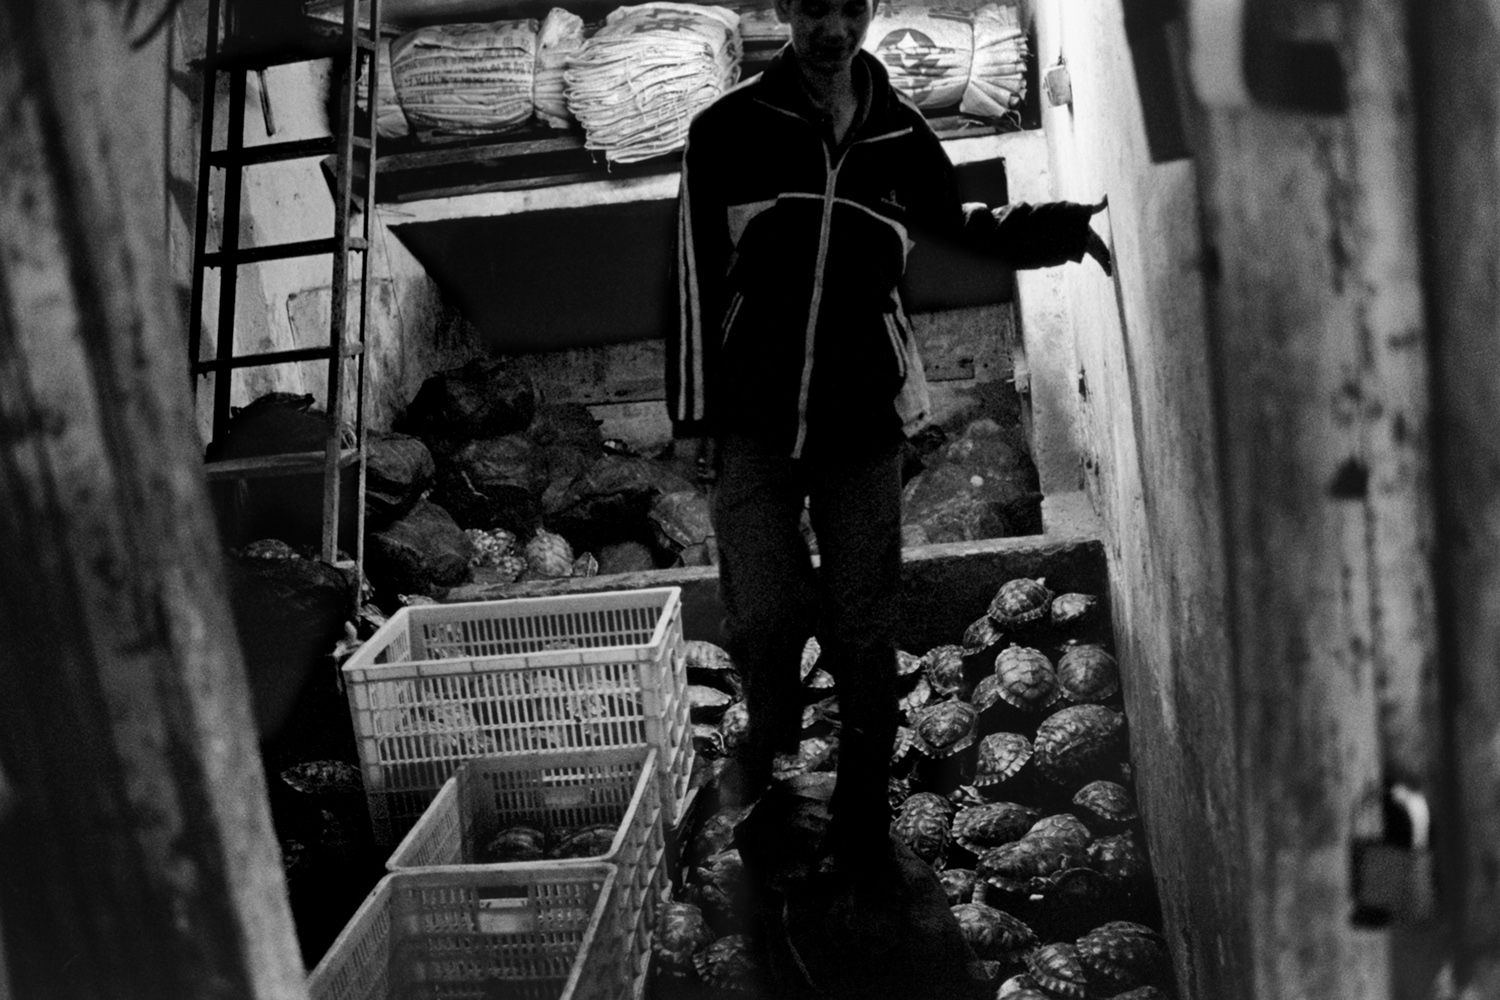 Guangzhou, China                                                                                             A man walks over a pile of live tortoises at the Qingping Medicine Market.